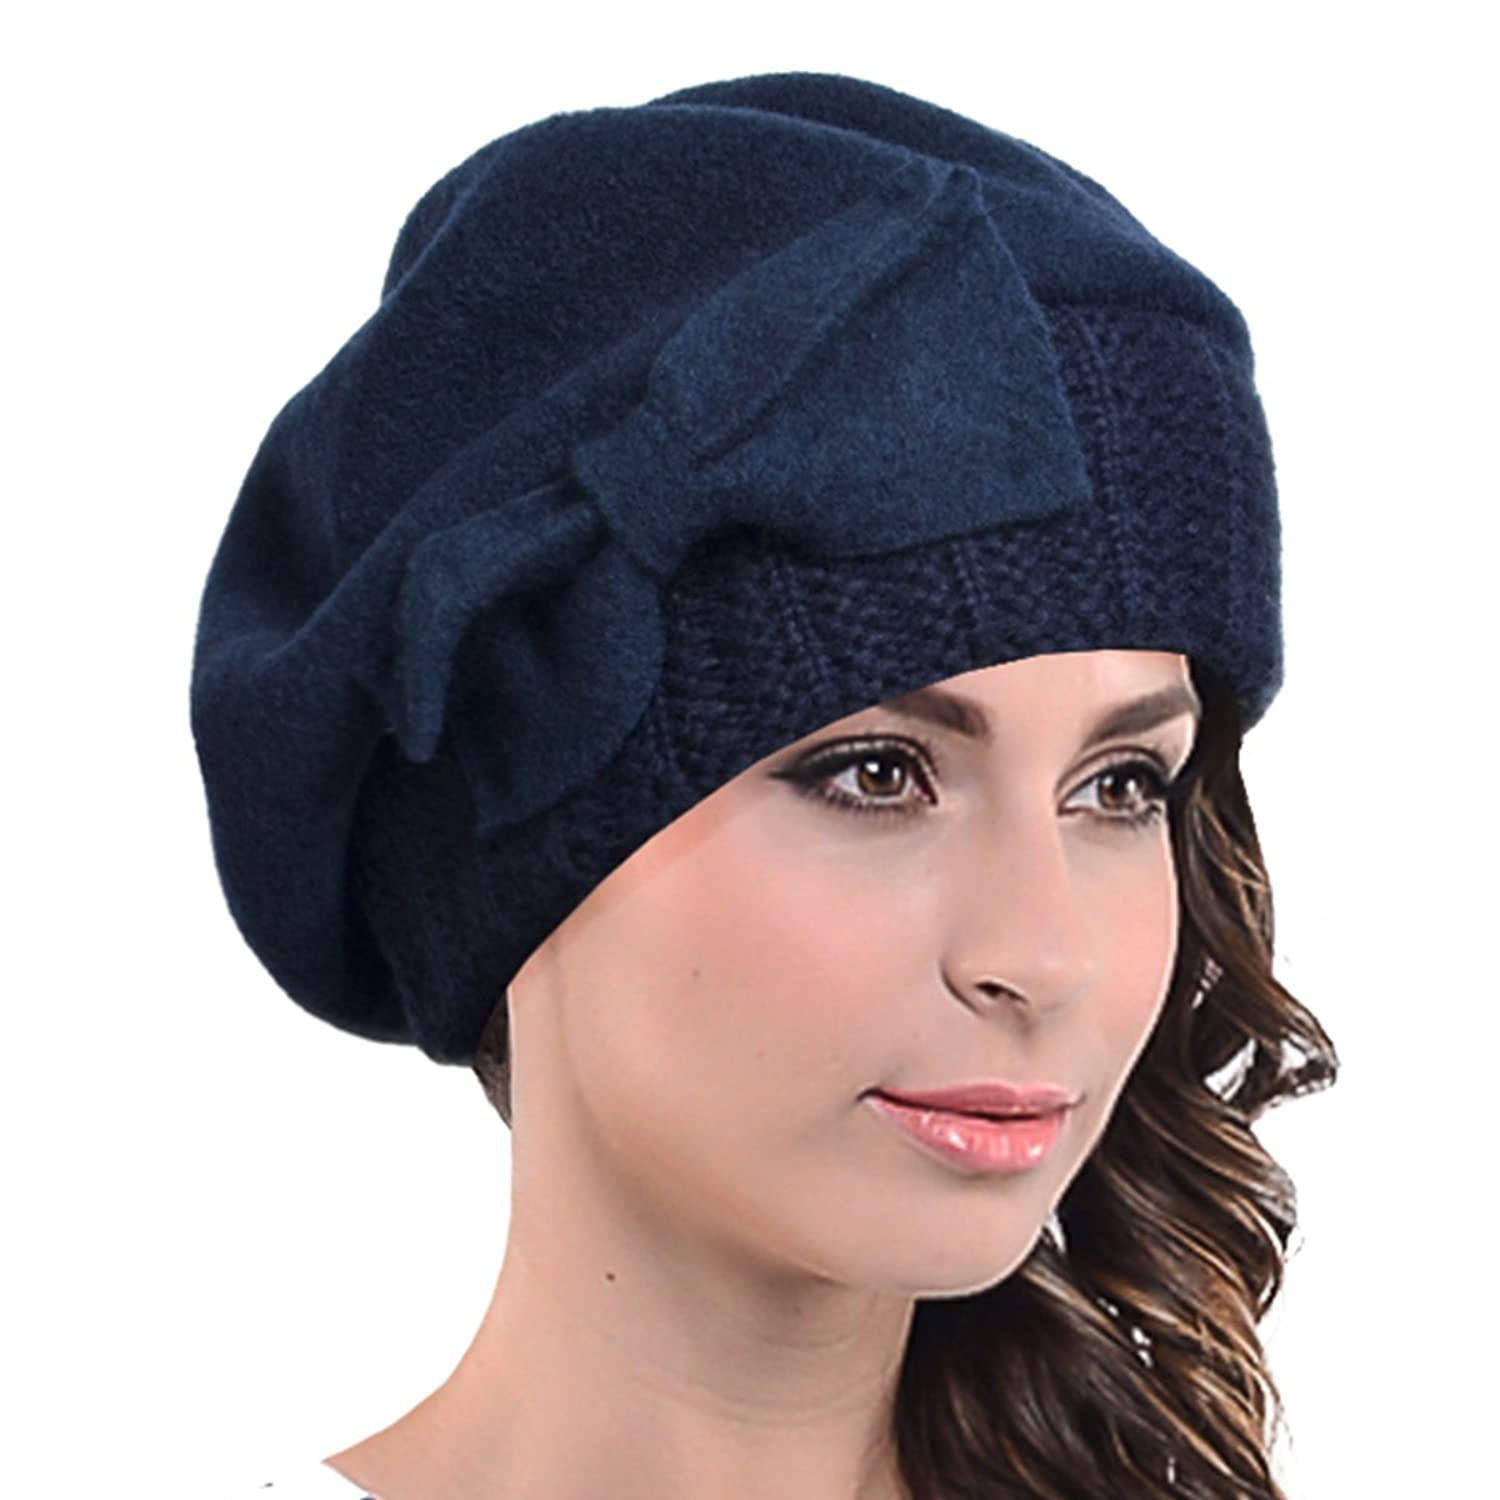 1920s Fashion & Clothing | Roaring 20s Attire Lady French Beret Wool Beret Chic Beanie Winter Hat Jf-br034 $21.99 AT vintagedancer.com